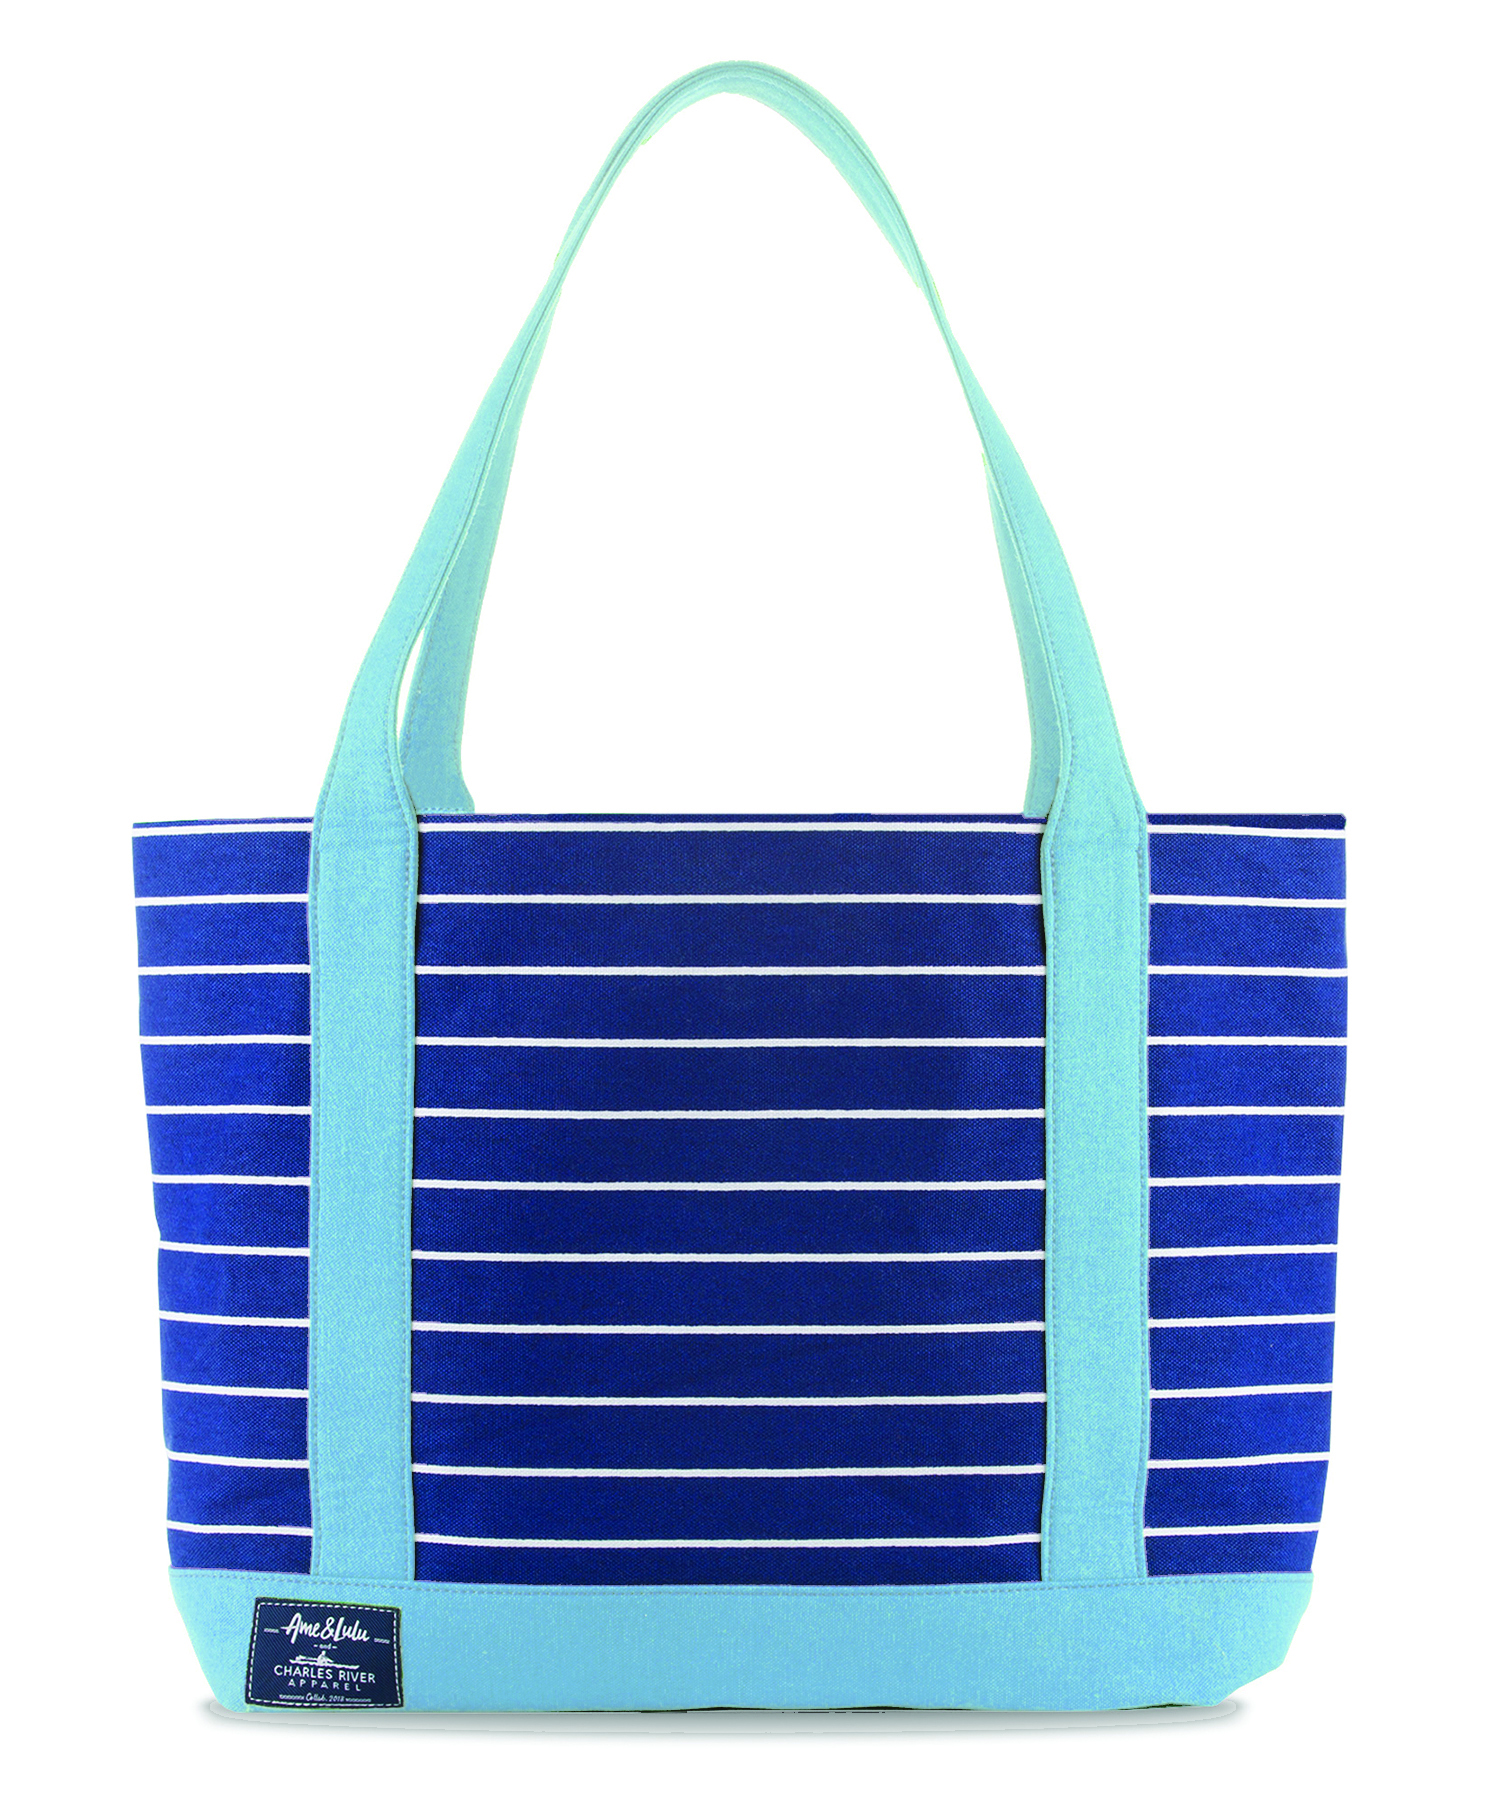 click to view Sky Blue/Stripe 575